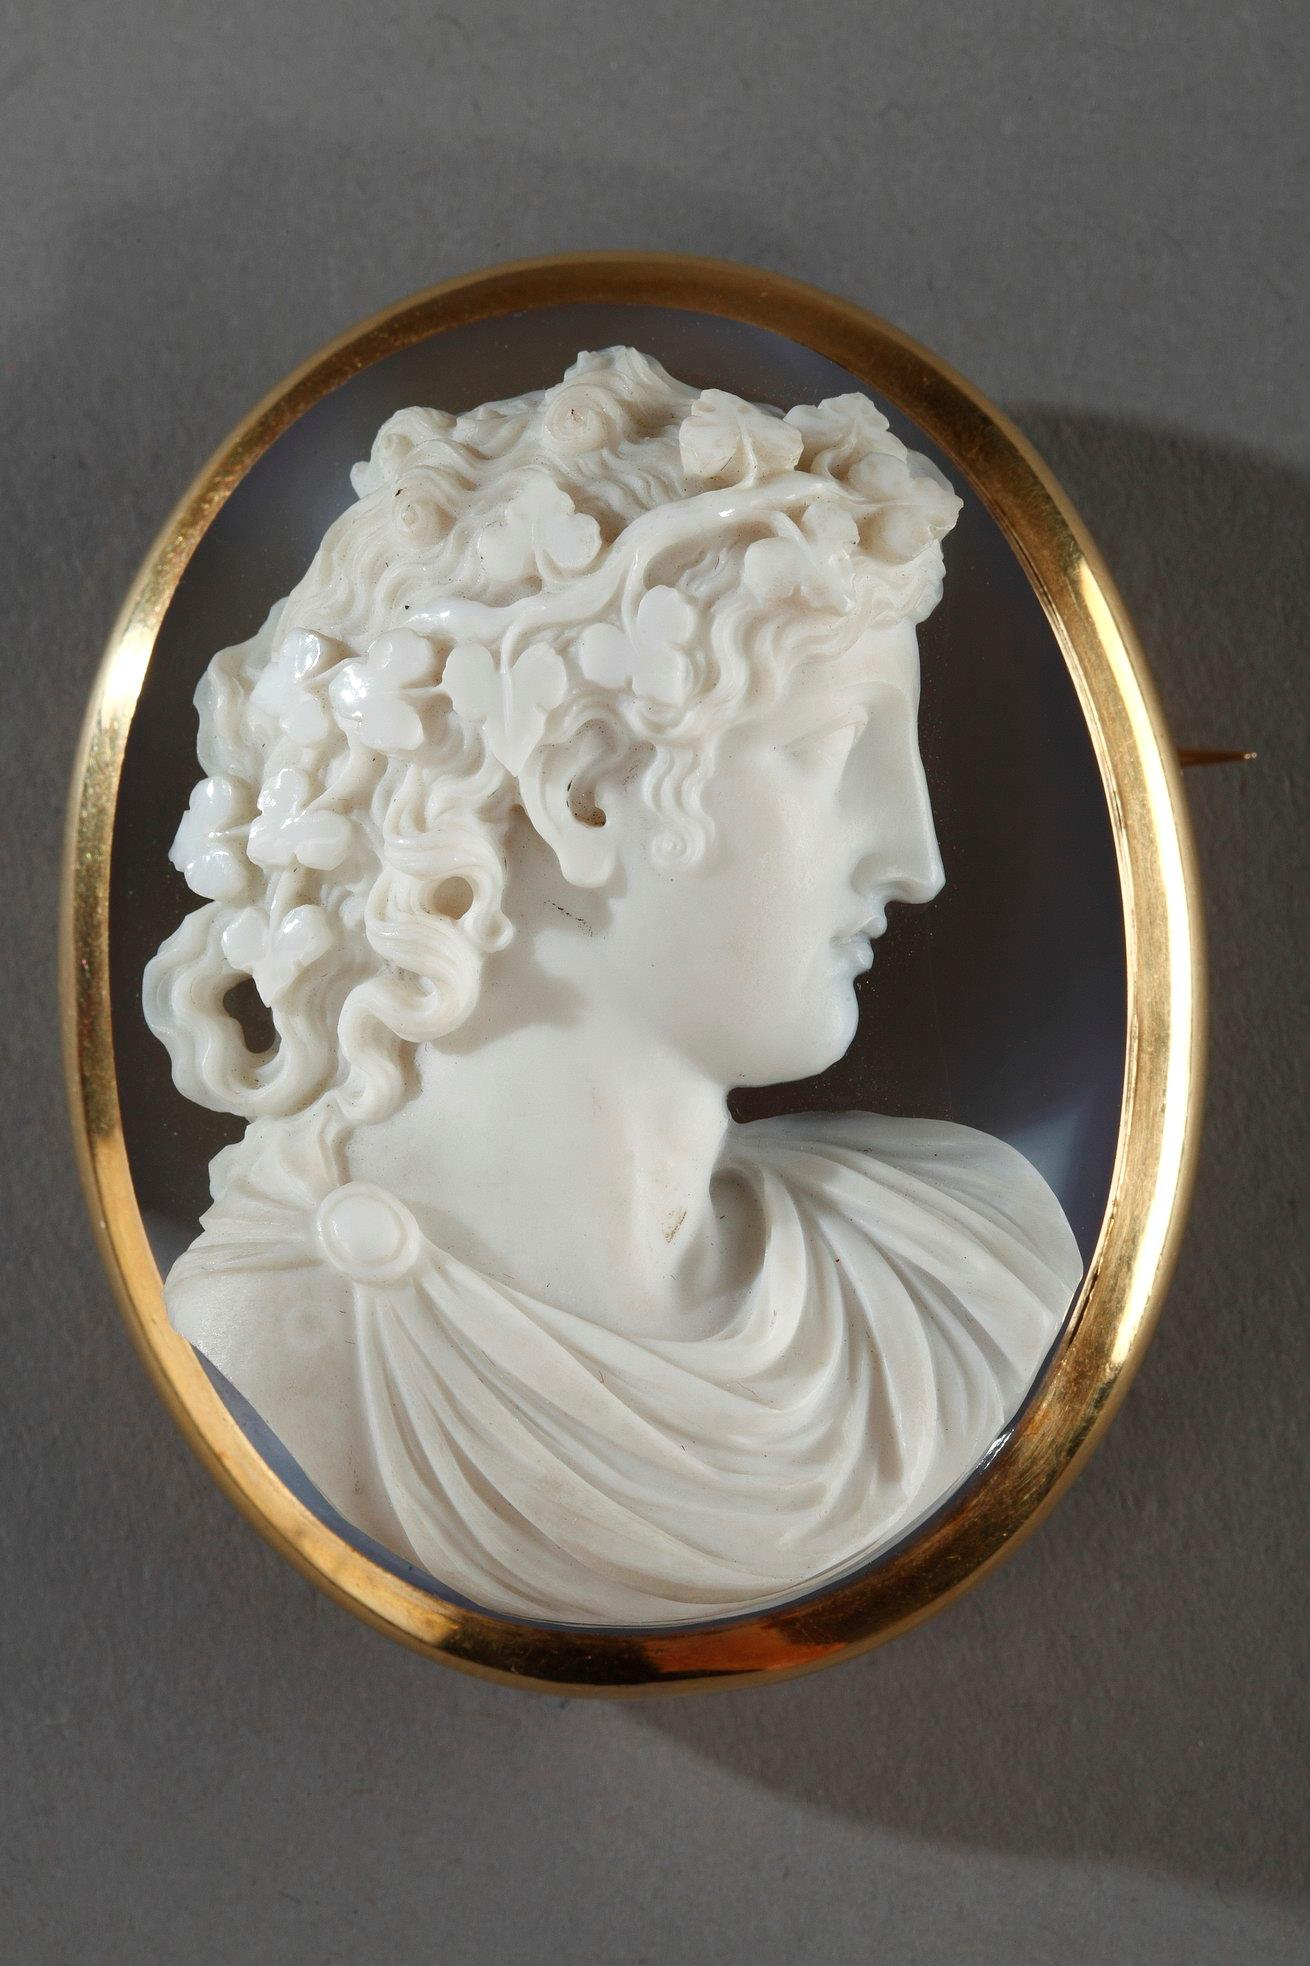 CAMEO ON AGATE, GOLD MOUNTING. 19TH CENTURY.